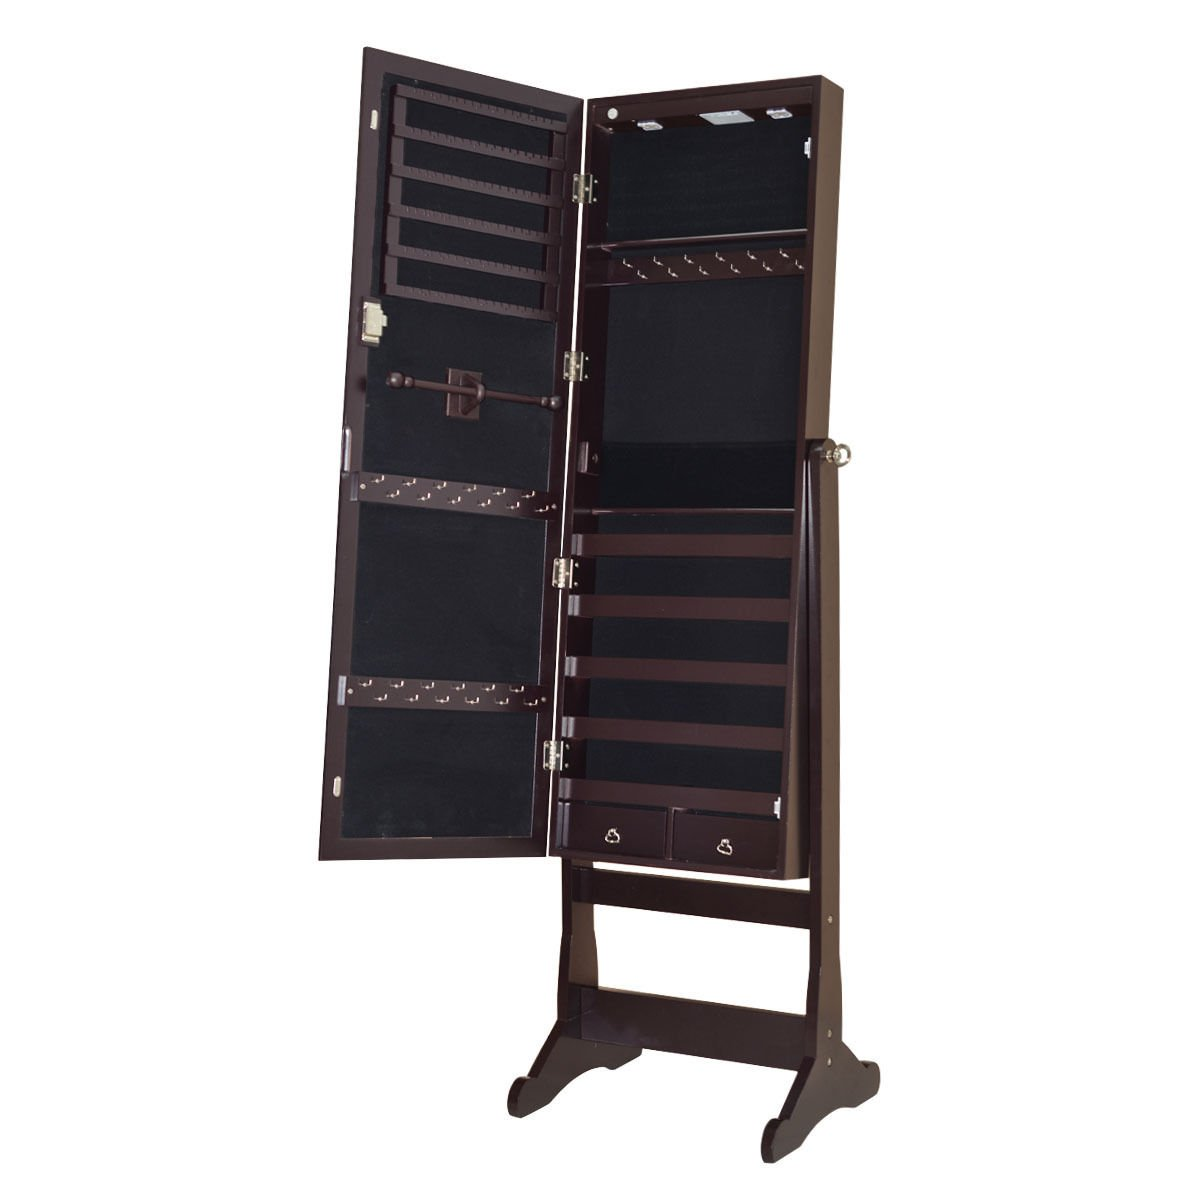 Full Length Mirror Jewelry Cabinet Armoire Velvet-Lined Interior Organizer Storage w/ LED Lights Battery by FDInspiration (Image #1)